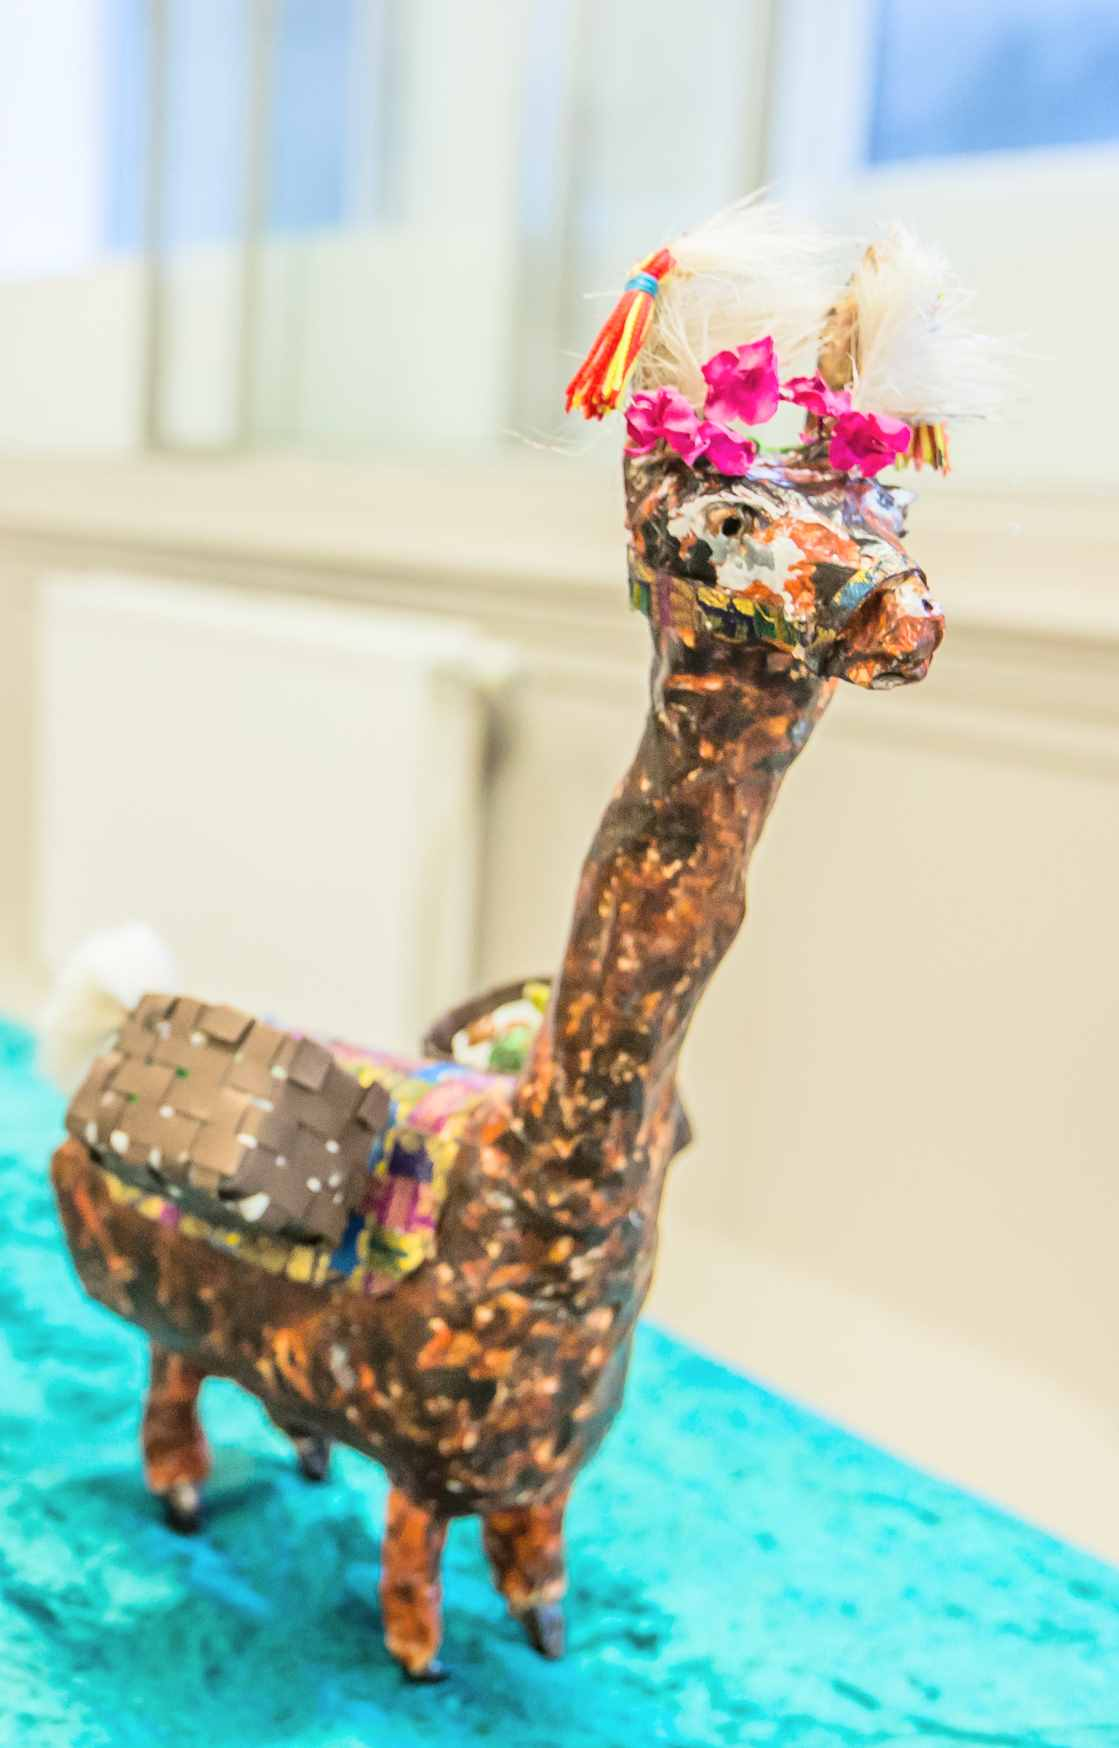 Llama on display at Summerhall  Exhibition in October 2017  -